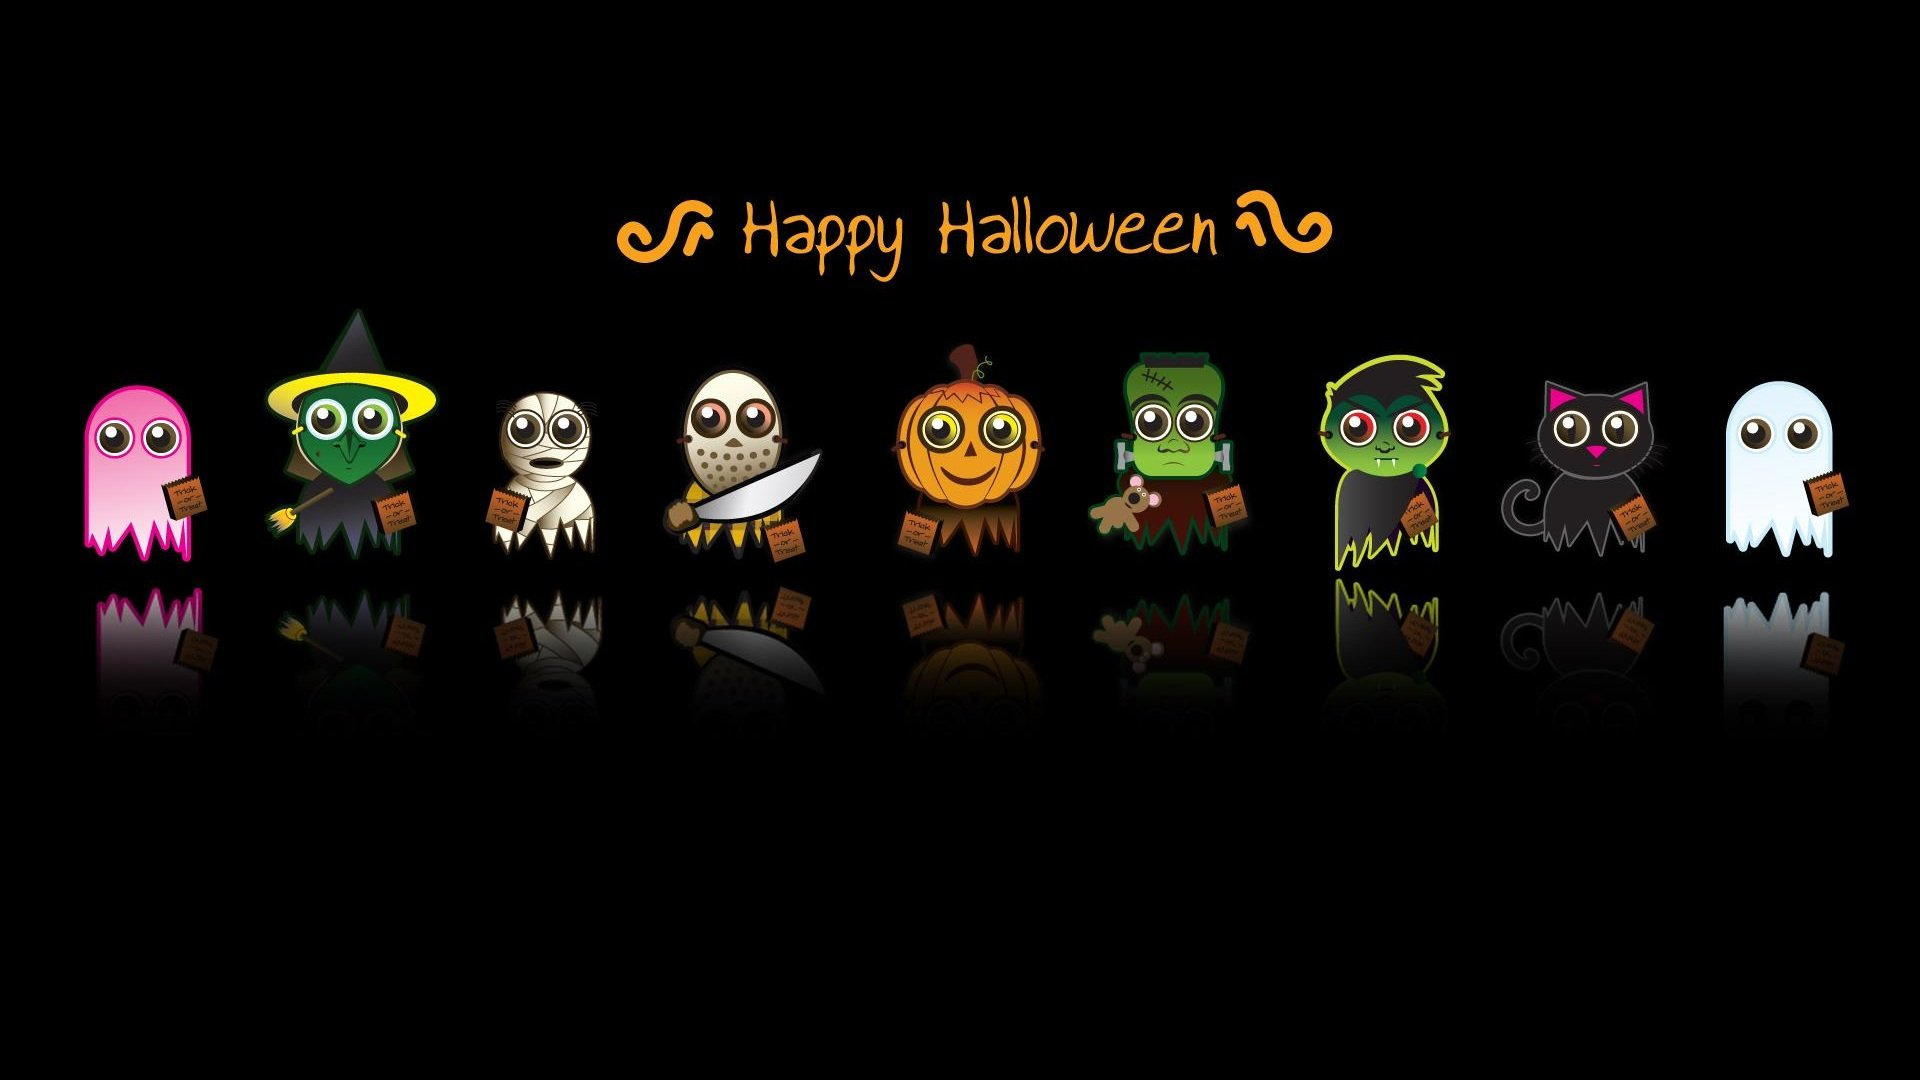 Halloween Wallpapers 60 Wallpapers Desktop Wallpapers HD 1920x1080